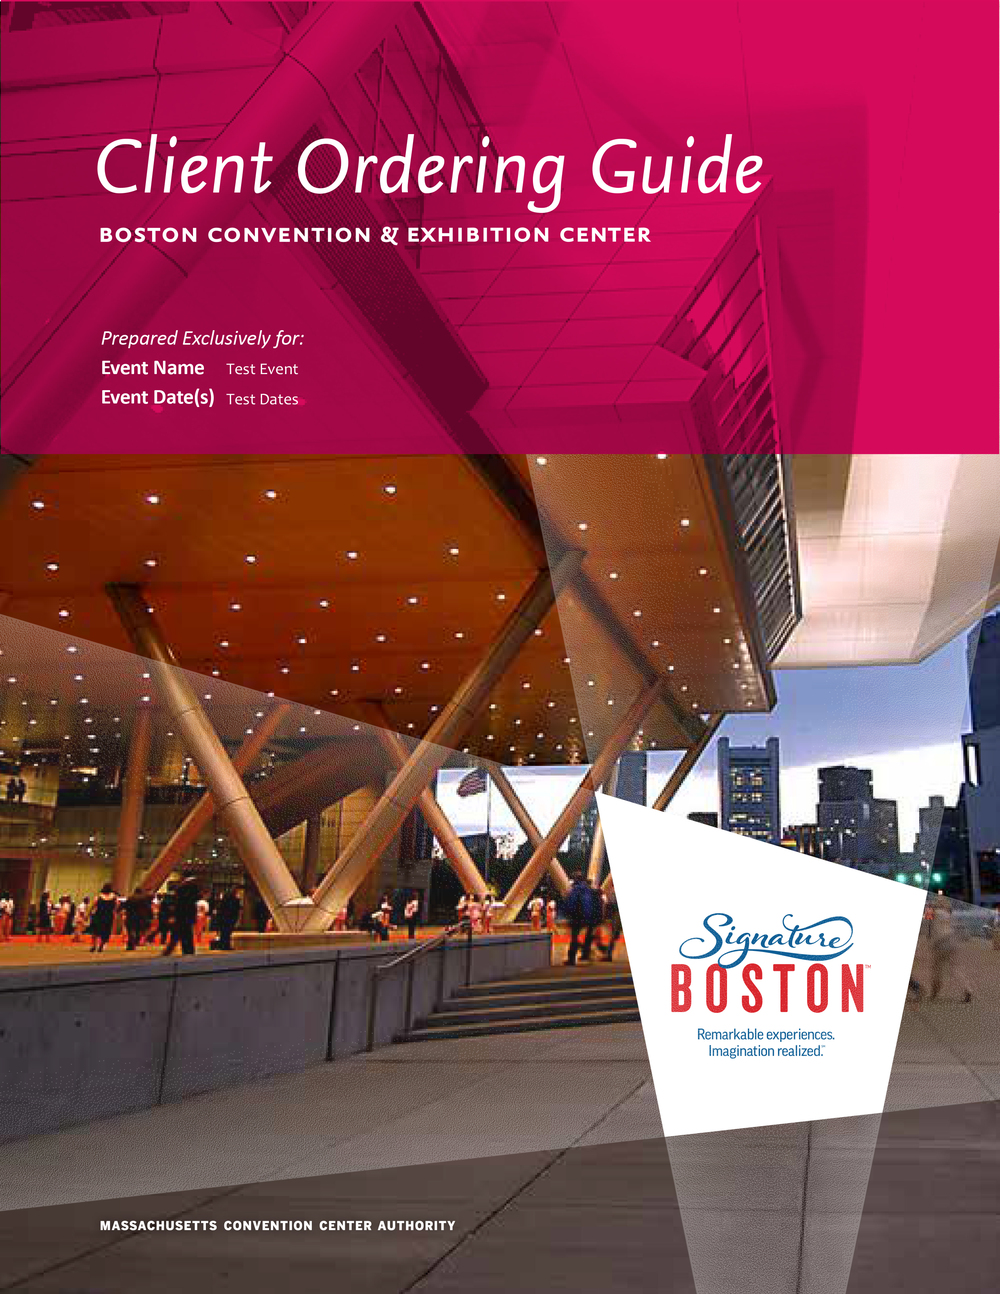 Client_Ordering_Guide_BCEC_Final-1.jpg